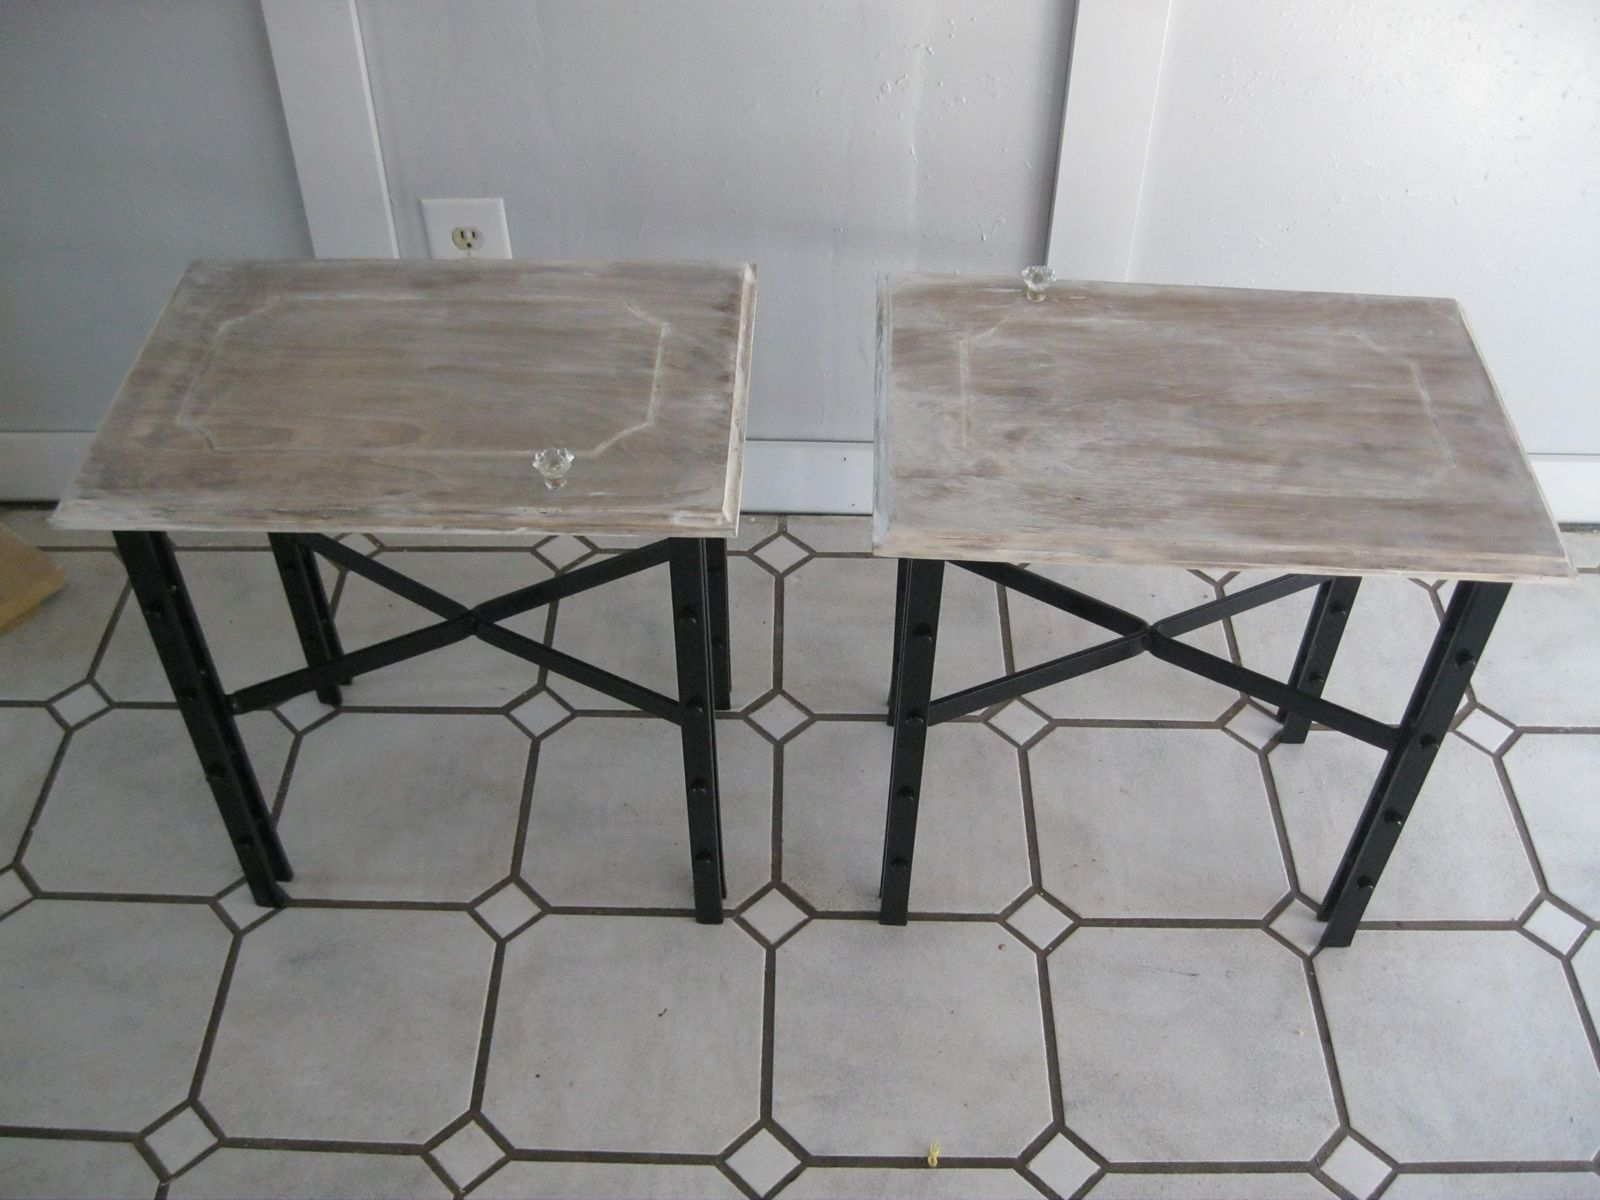 Custom Made Wrought Iron End Tables by Mciron | CustomMade.com